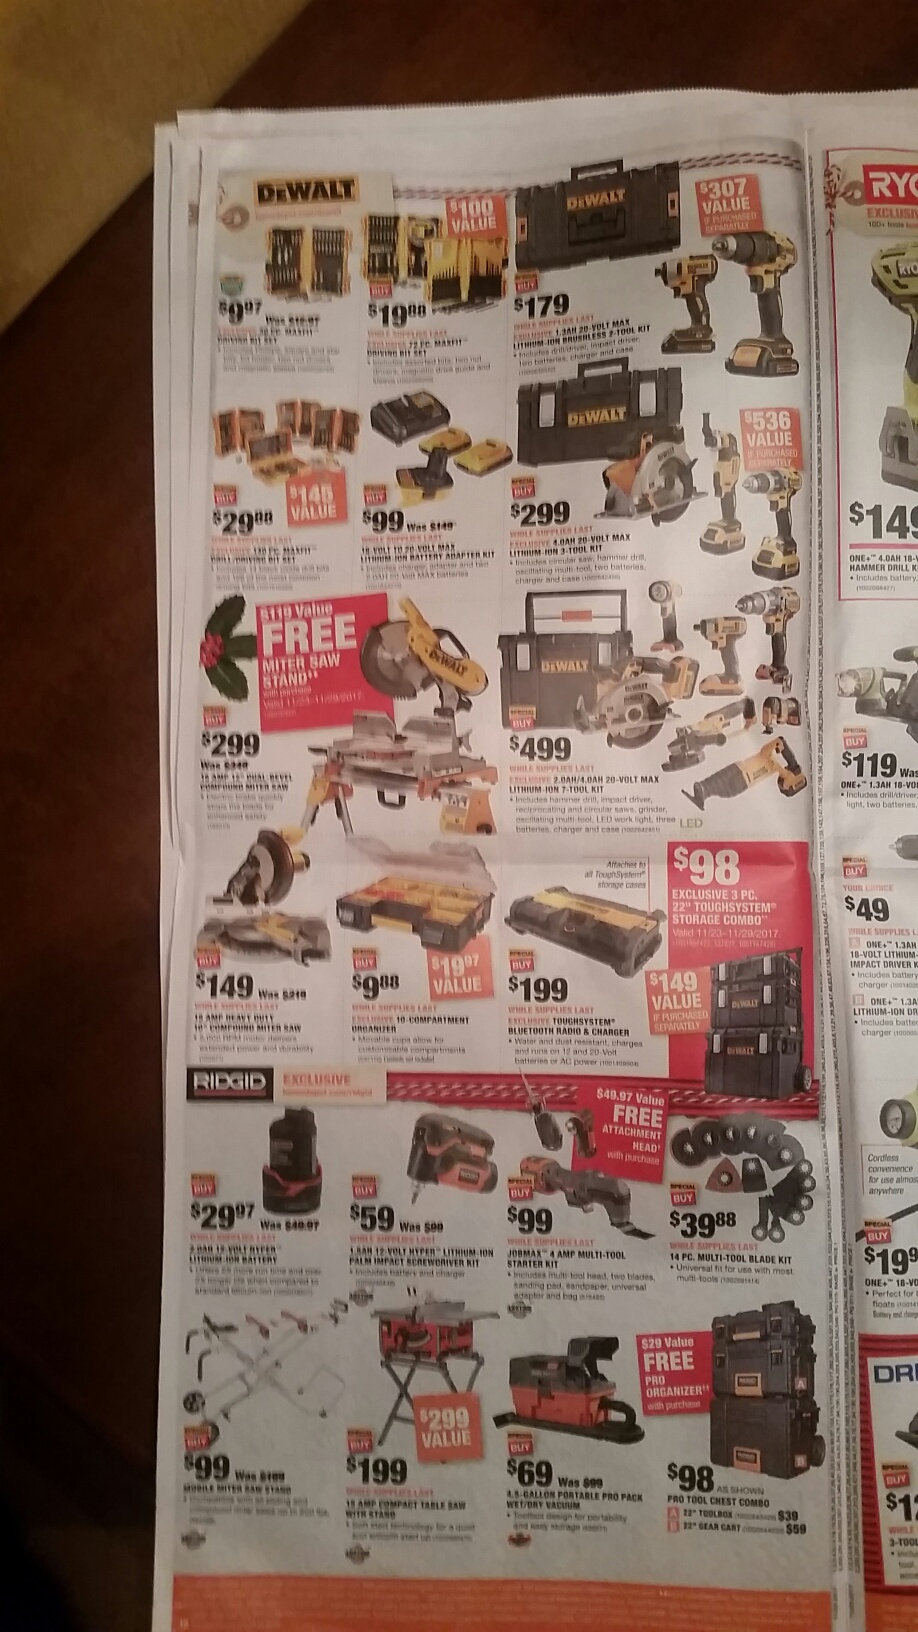 Home Depot Black Friday 2019 Ad Smart Home Kitchen